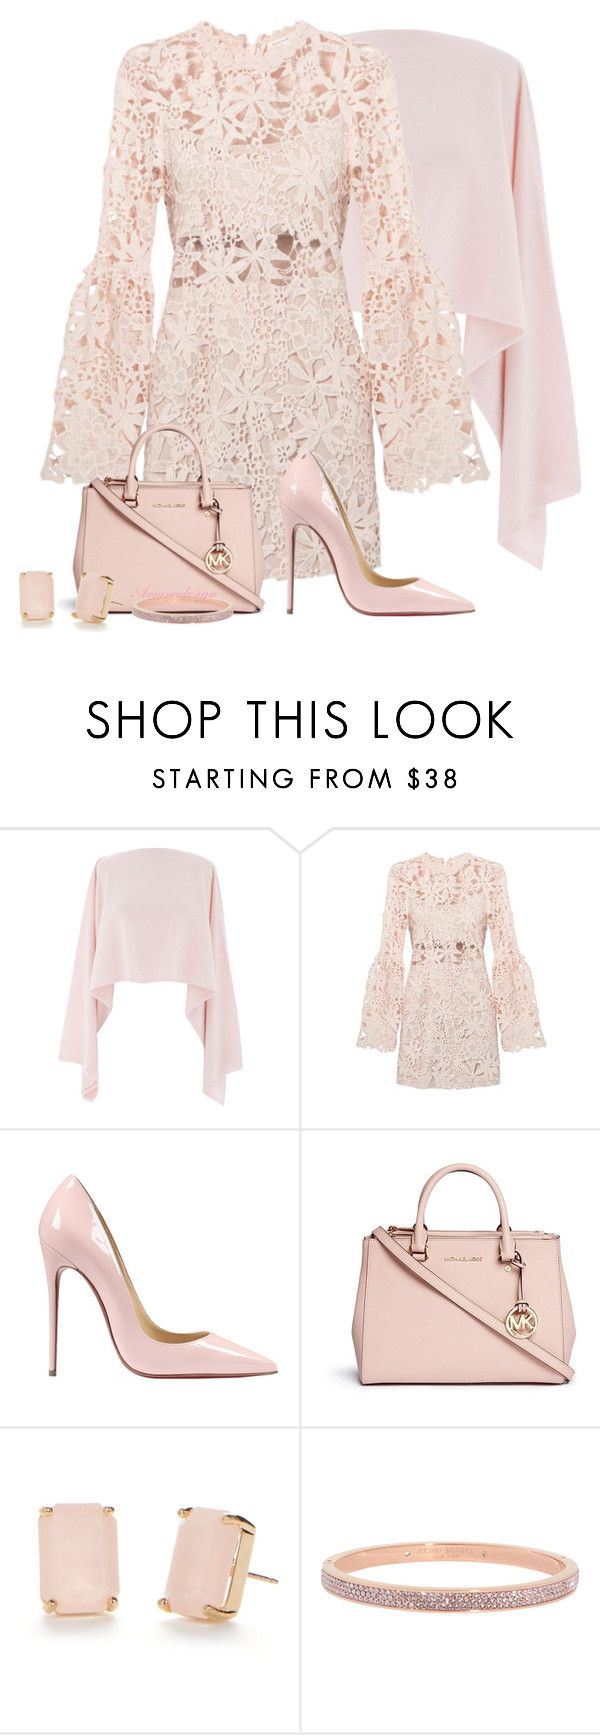 """""""LACE DRESS"""" by arjanadesign ❤ liked on Polyvore featuring Henri Bendel, Christian Louboutin, Michael Kors, Kate Spade, women's clothing, women's fashion, women, female, woman and misses"""